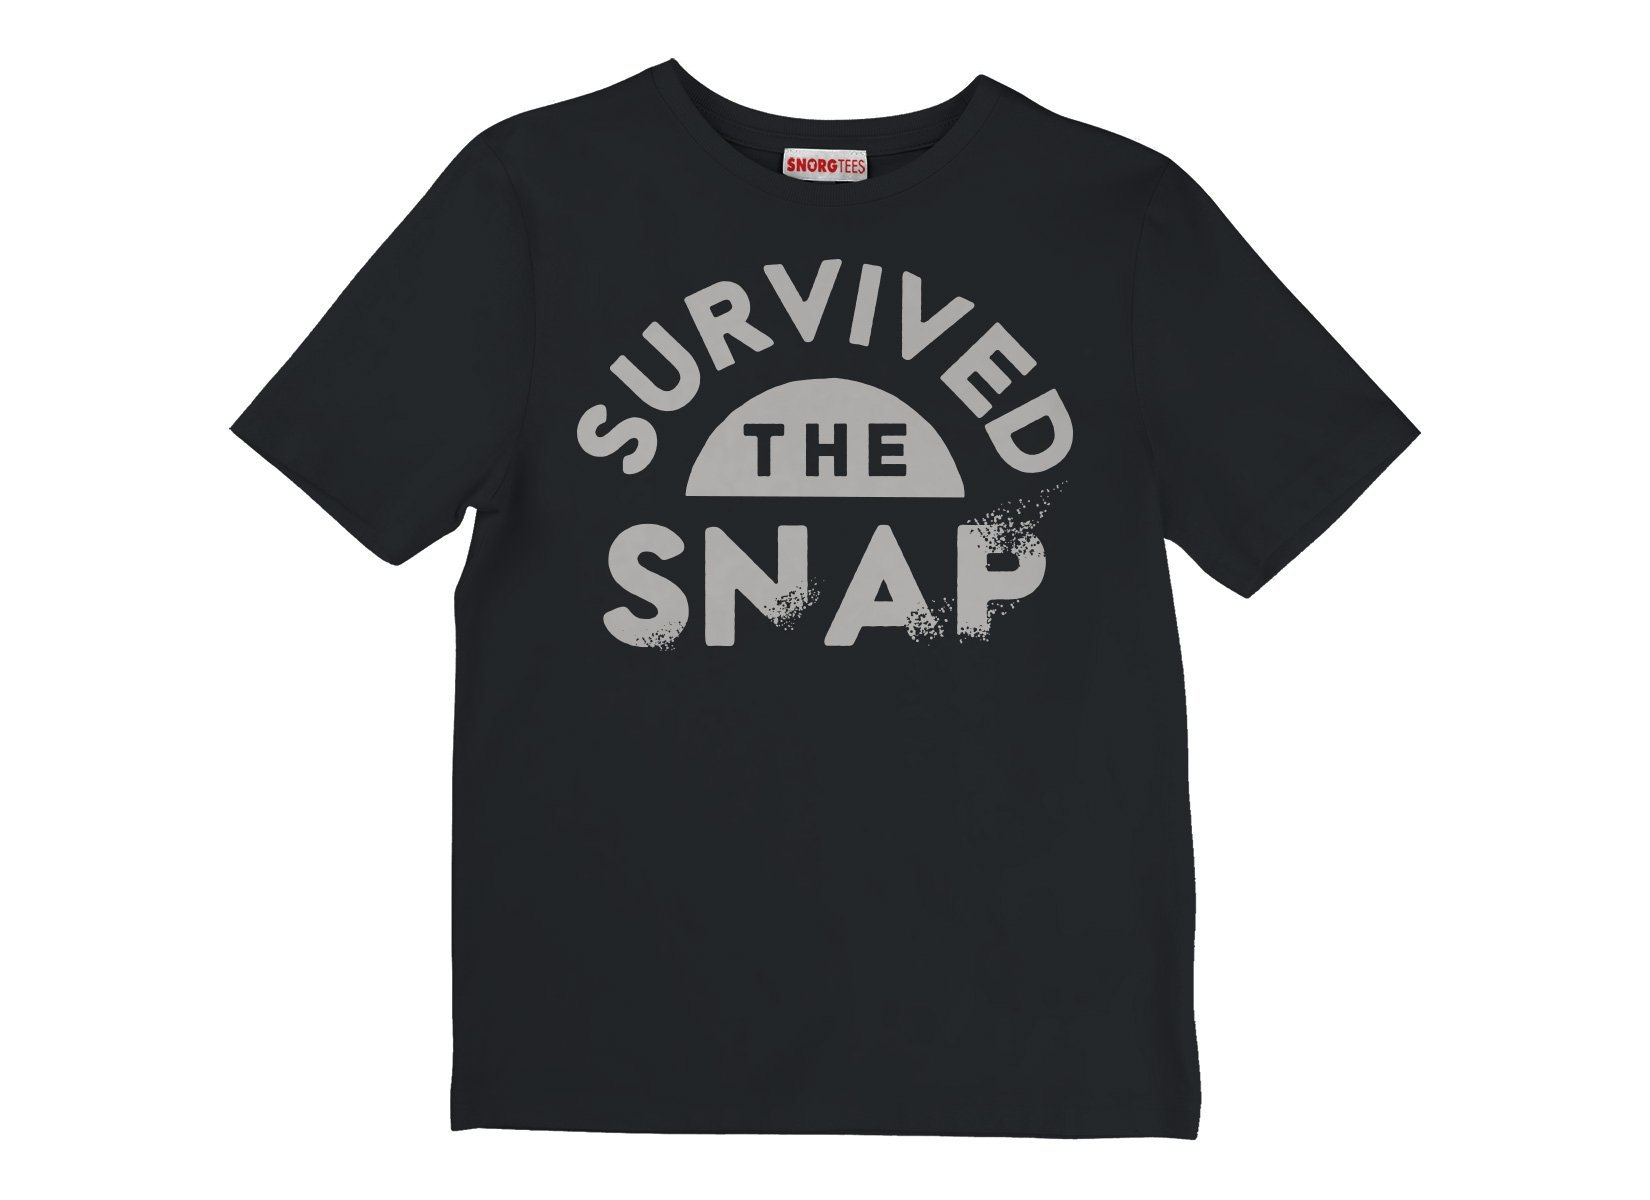 Survived The Snap on Kids T-Shirt